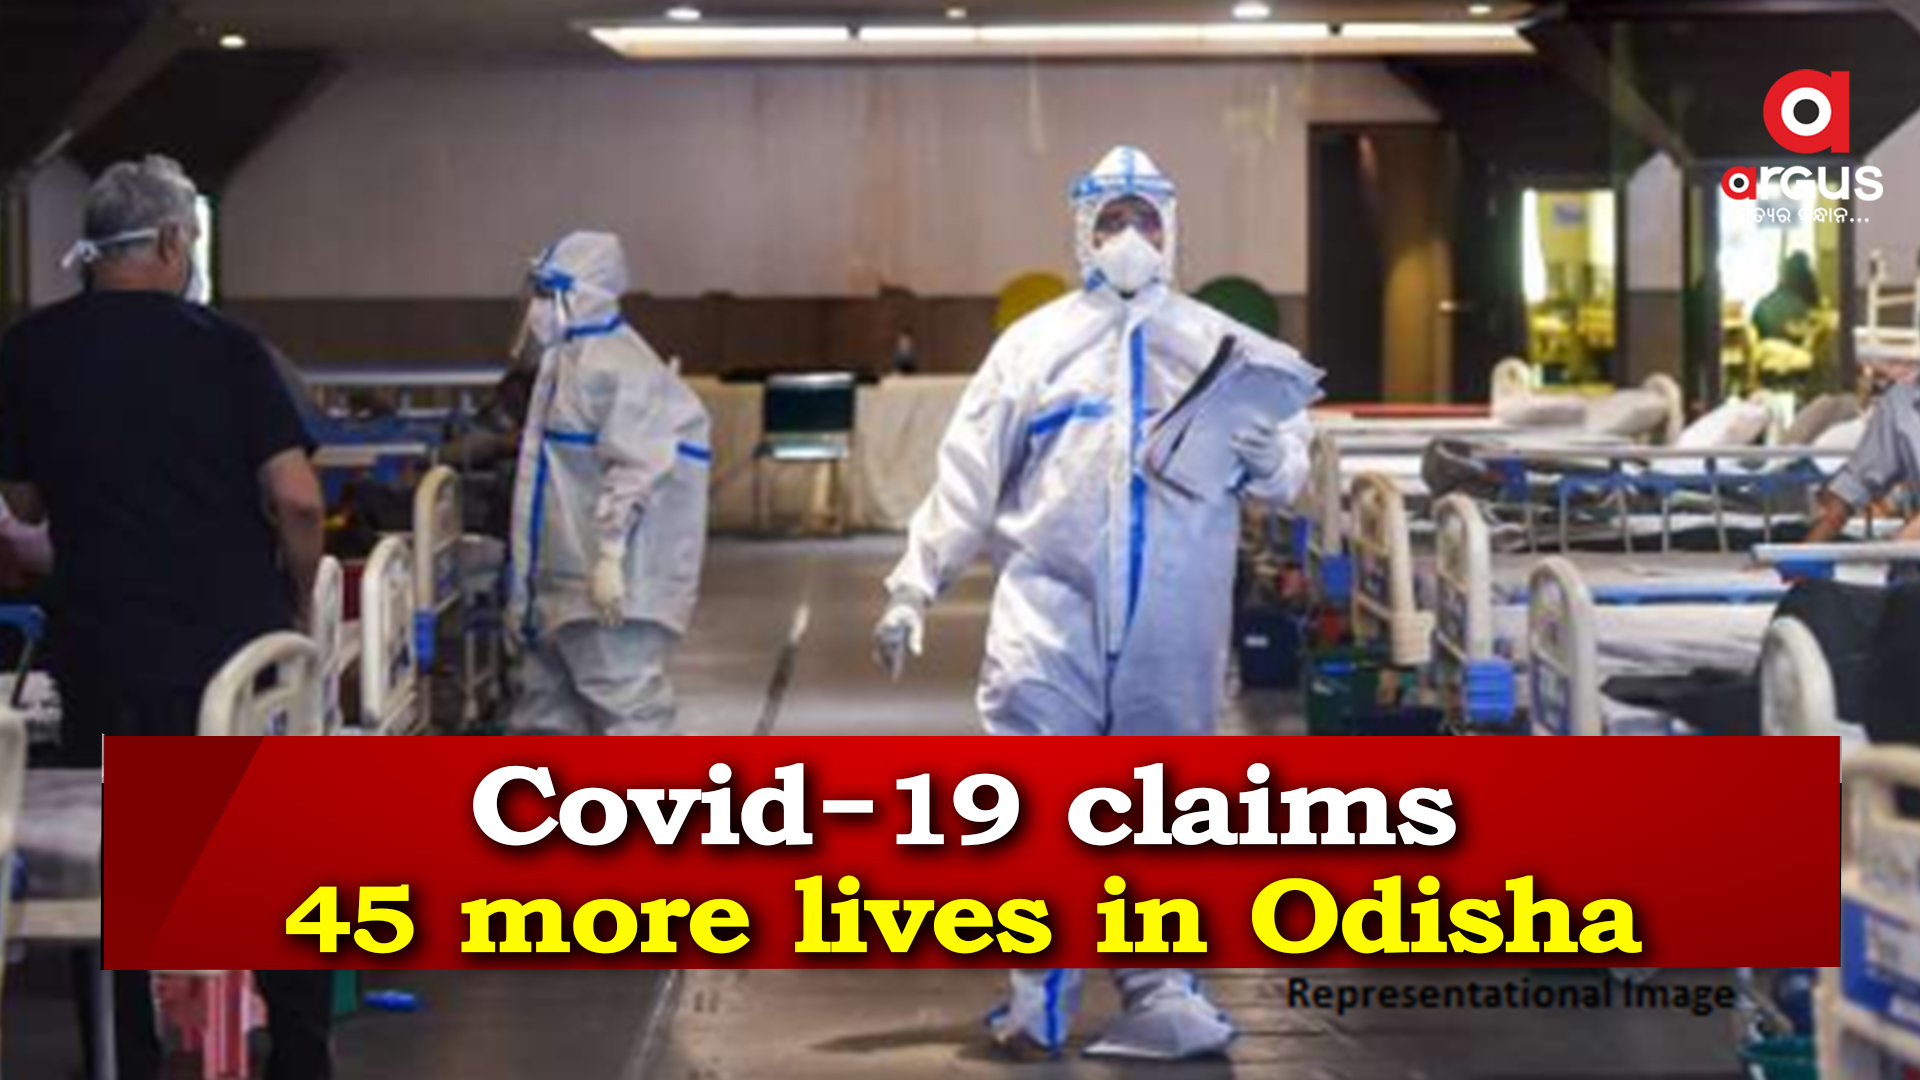 Odisha records 45 Covid-19 deaths, highest single day toll in State